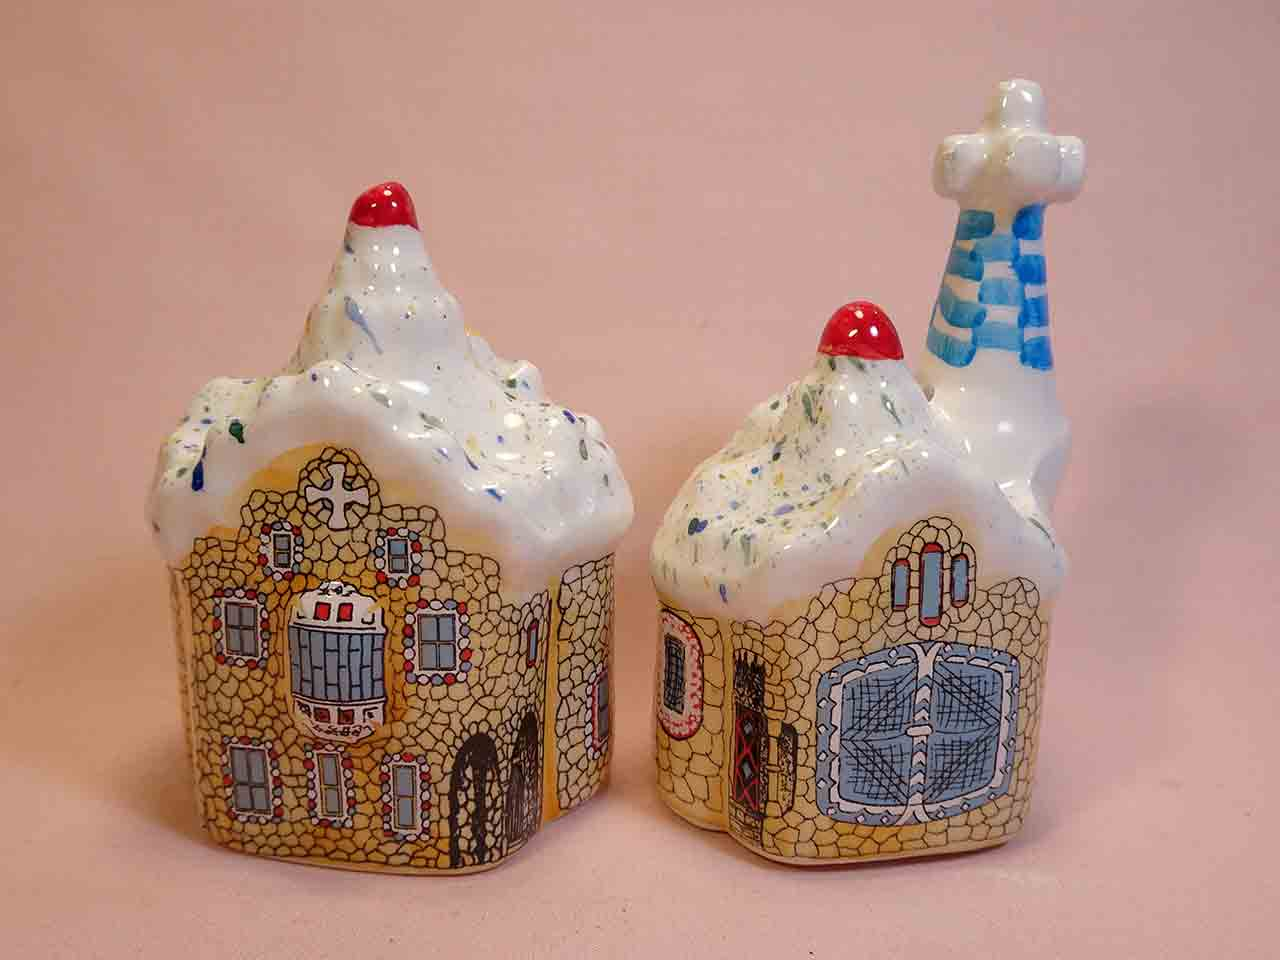 Park Guell by Gaudi salt and pepper shakers